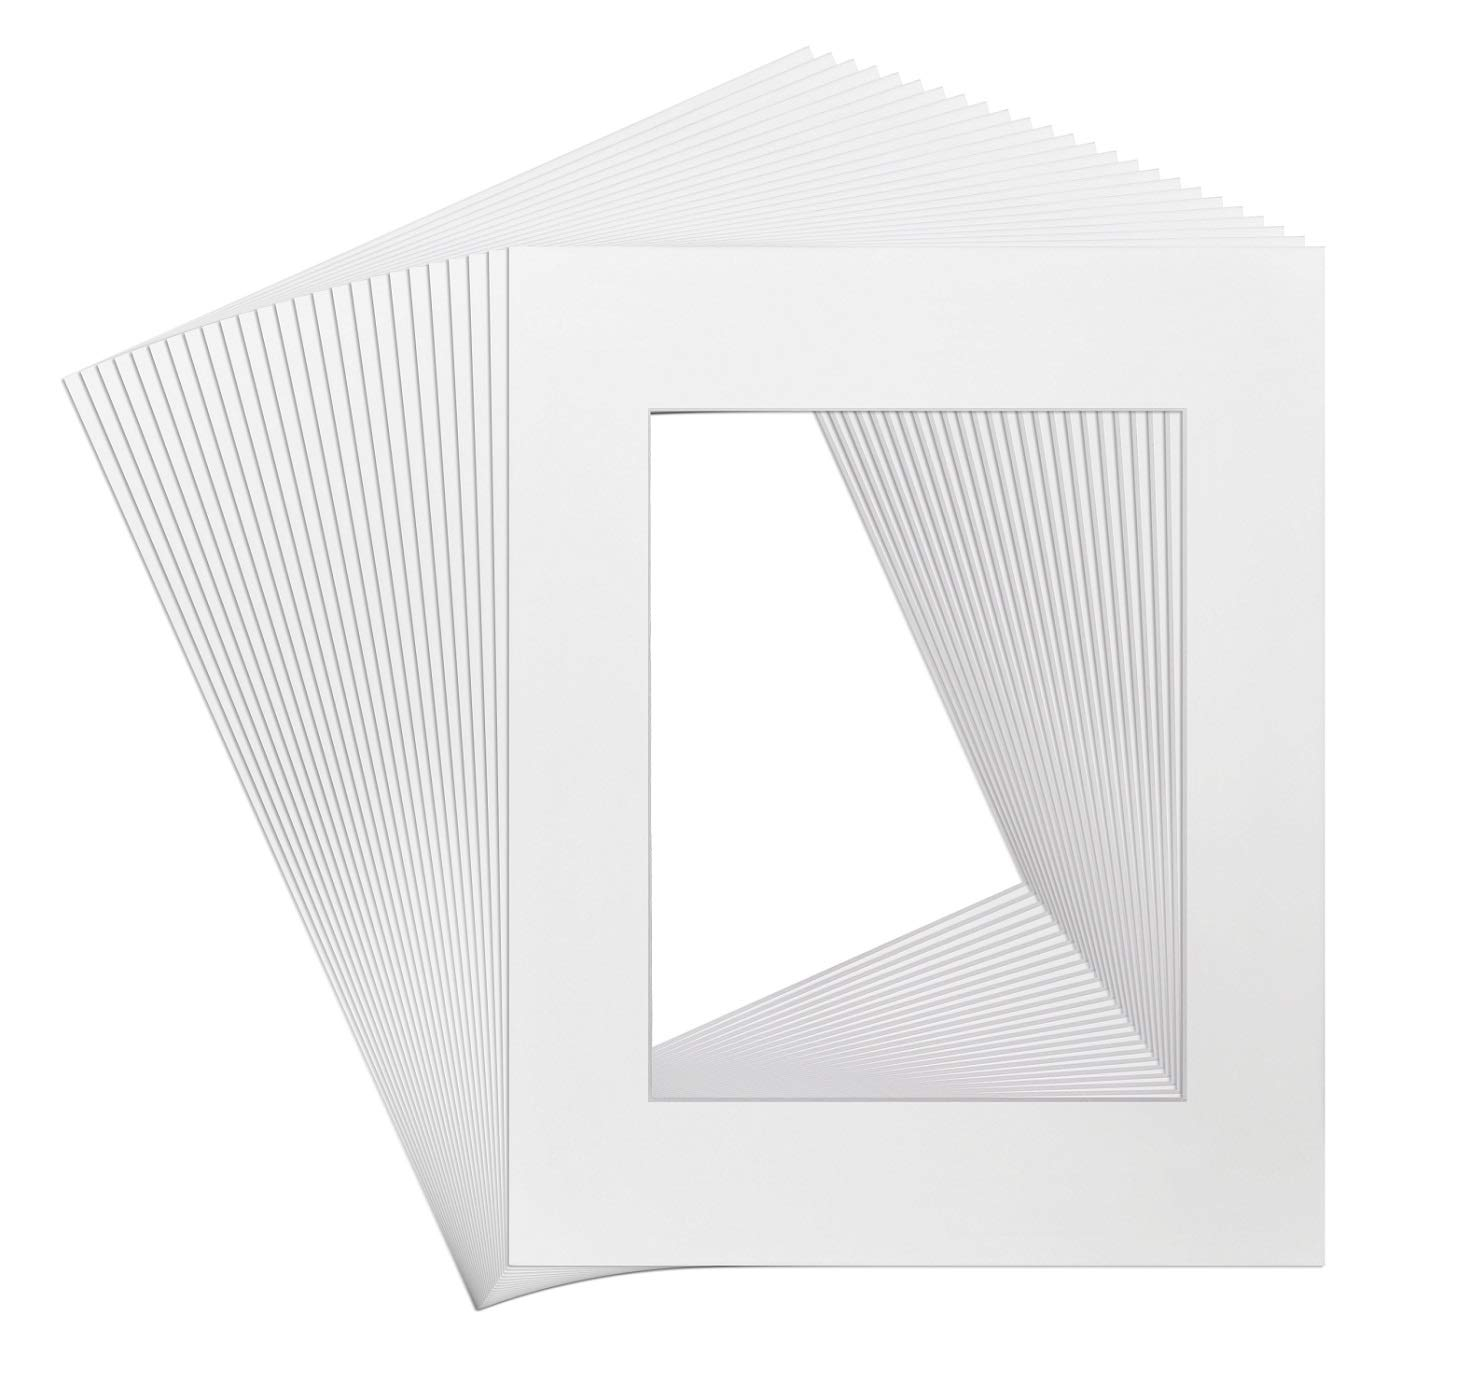 Golden State Art, Pack of 25, 16x20 White Picture Mats Mattes with White Core Bevel Cut for 11x14 Photo